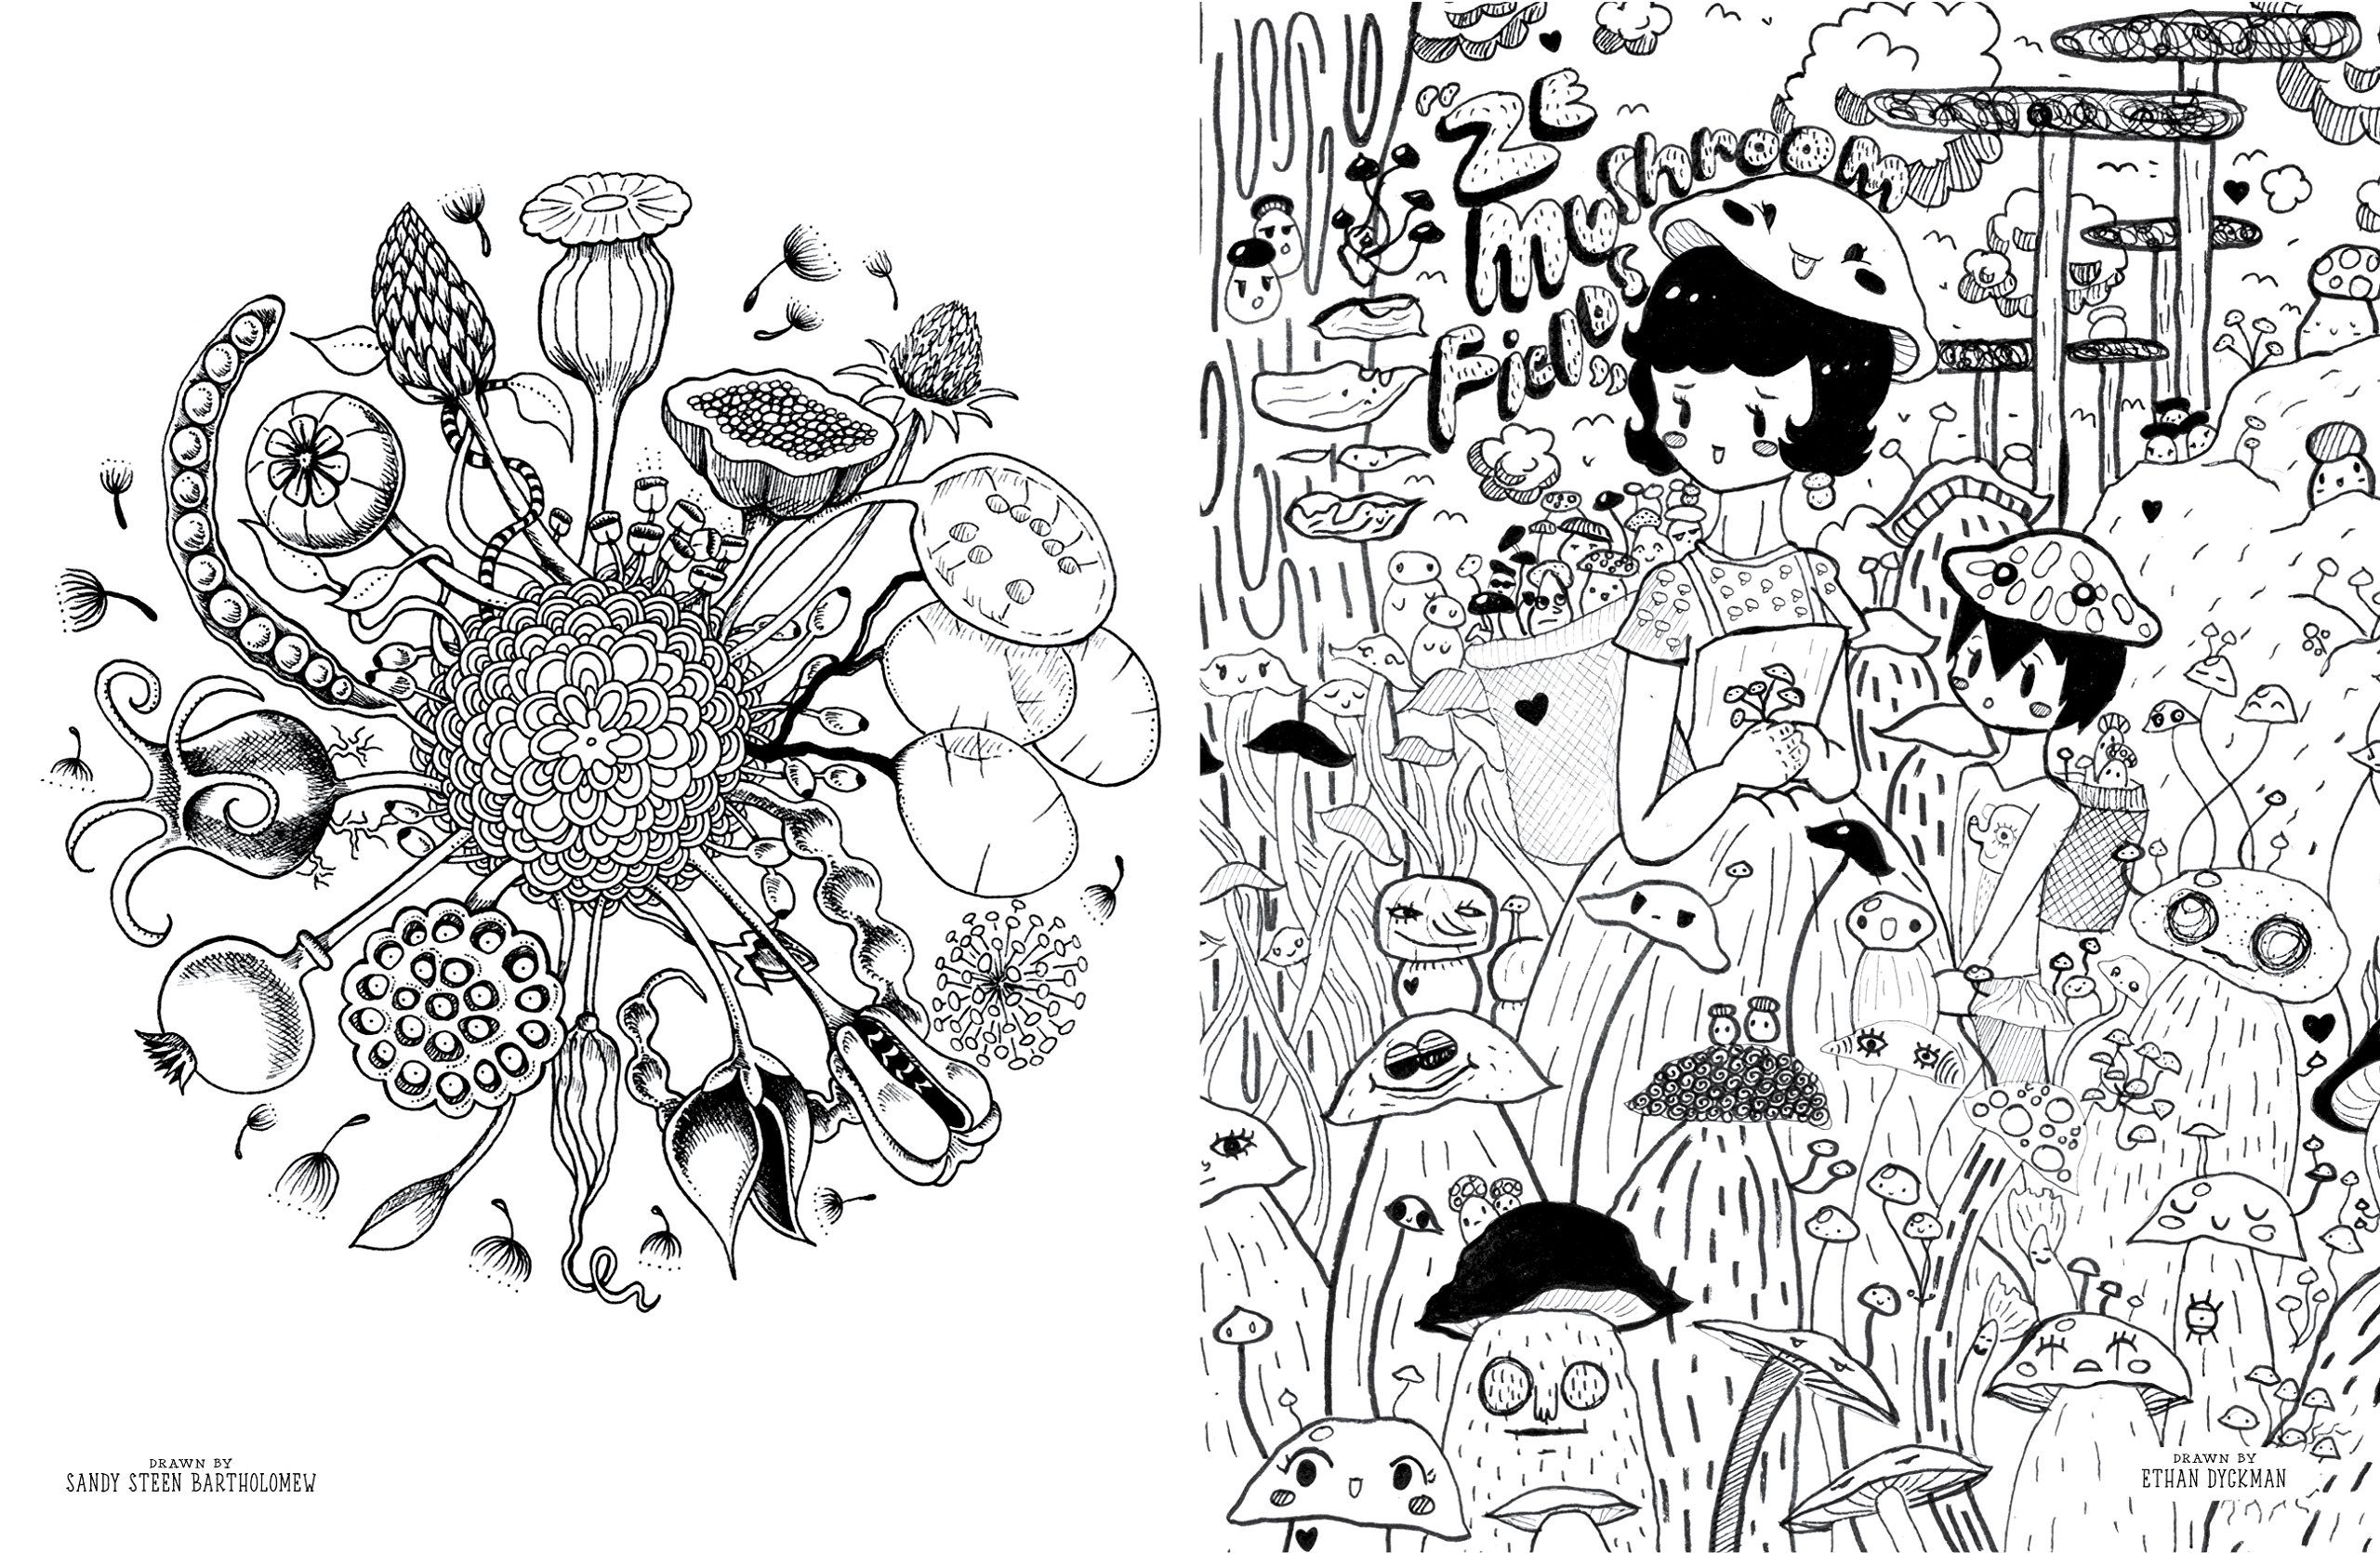 Buy Doodlers Anonymous Epic Coloring Book An Extraordinary Mashup Of Doodles And Drawings Begging To Be Filled In With Color Colouring Online